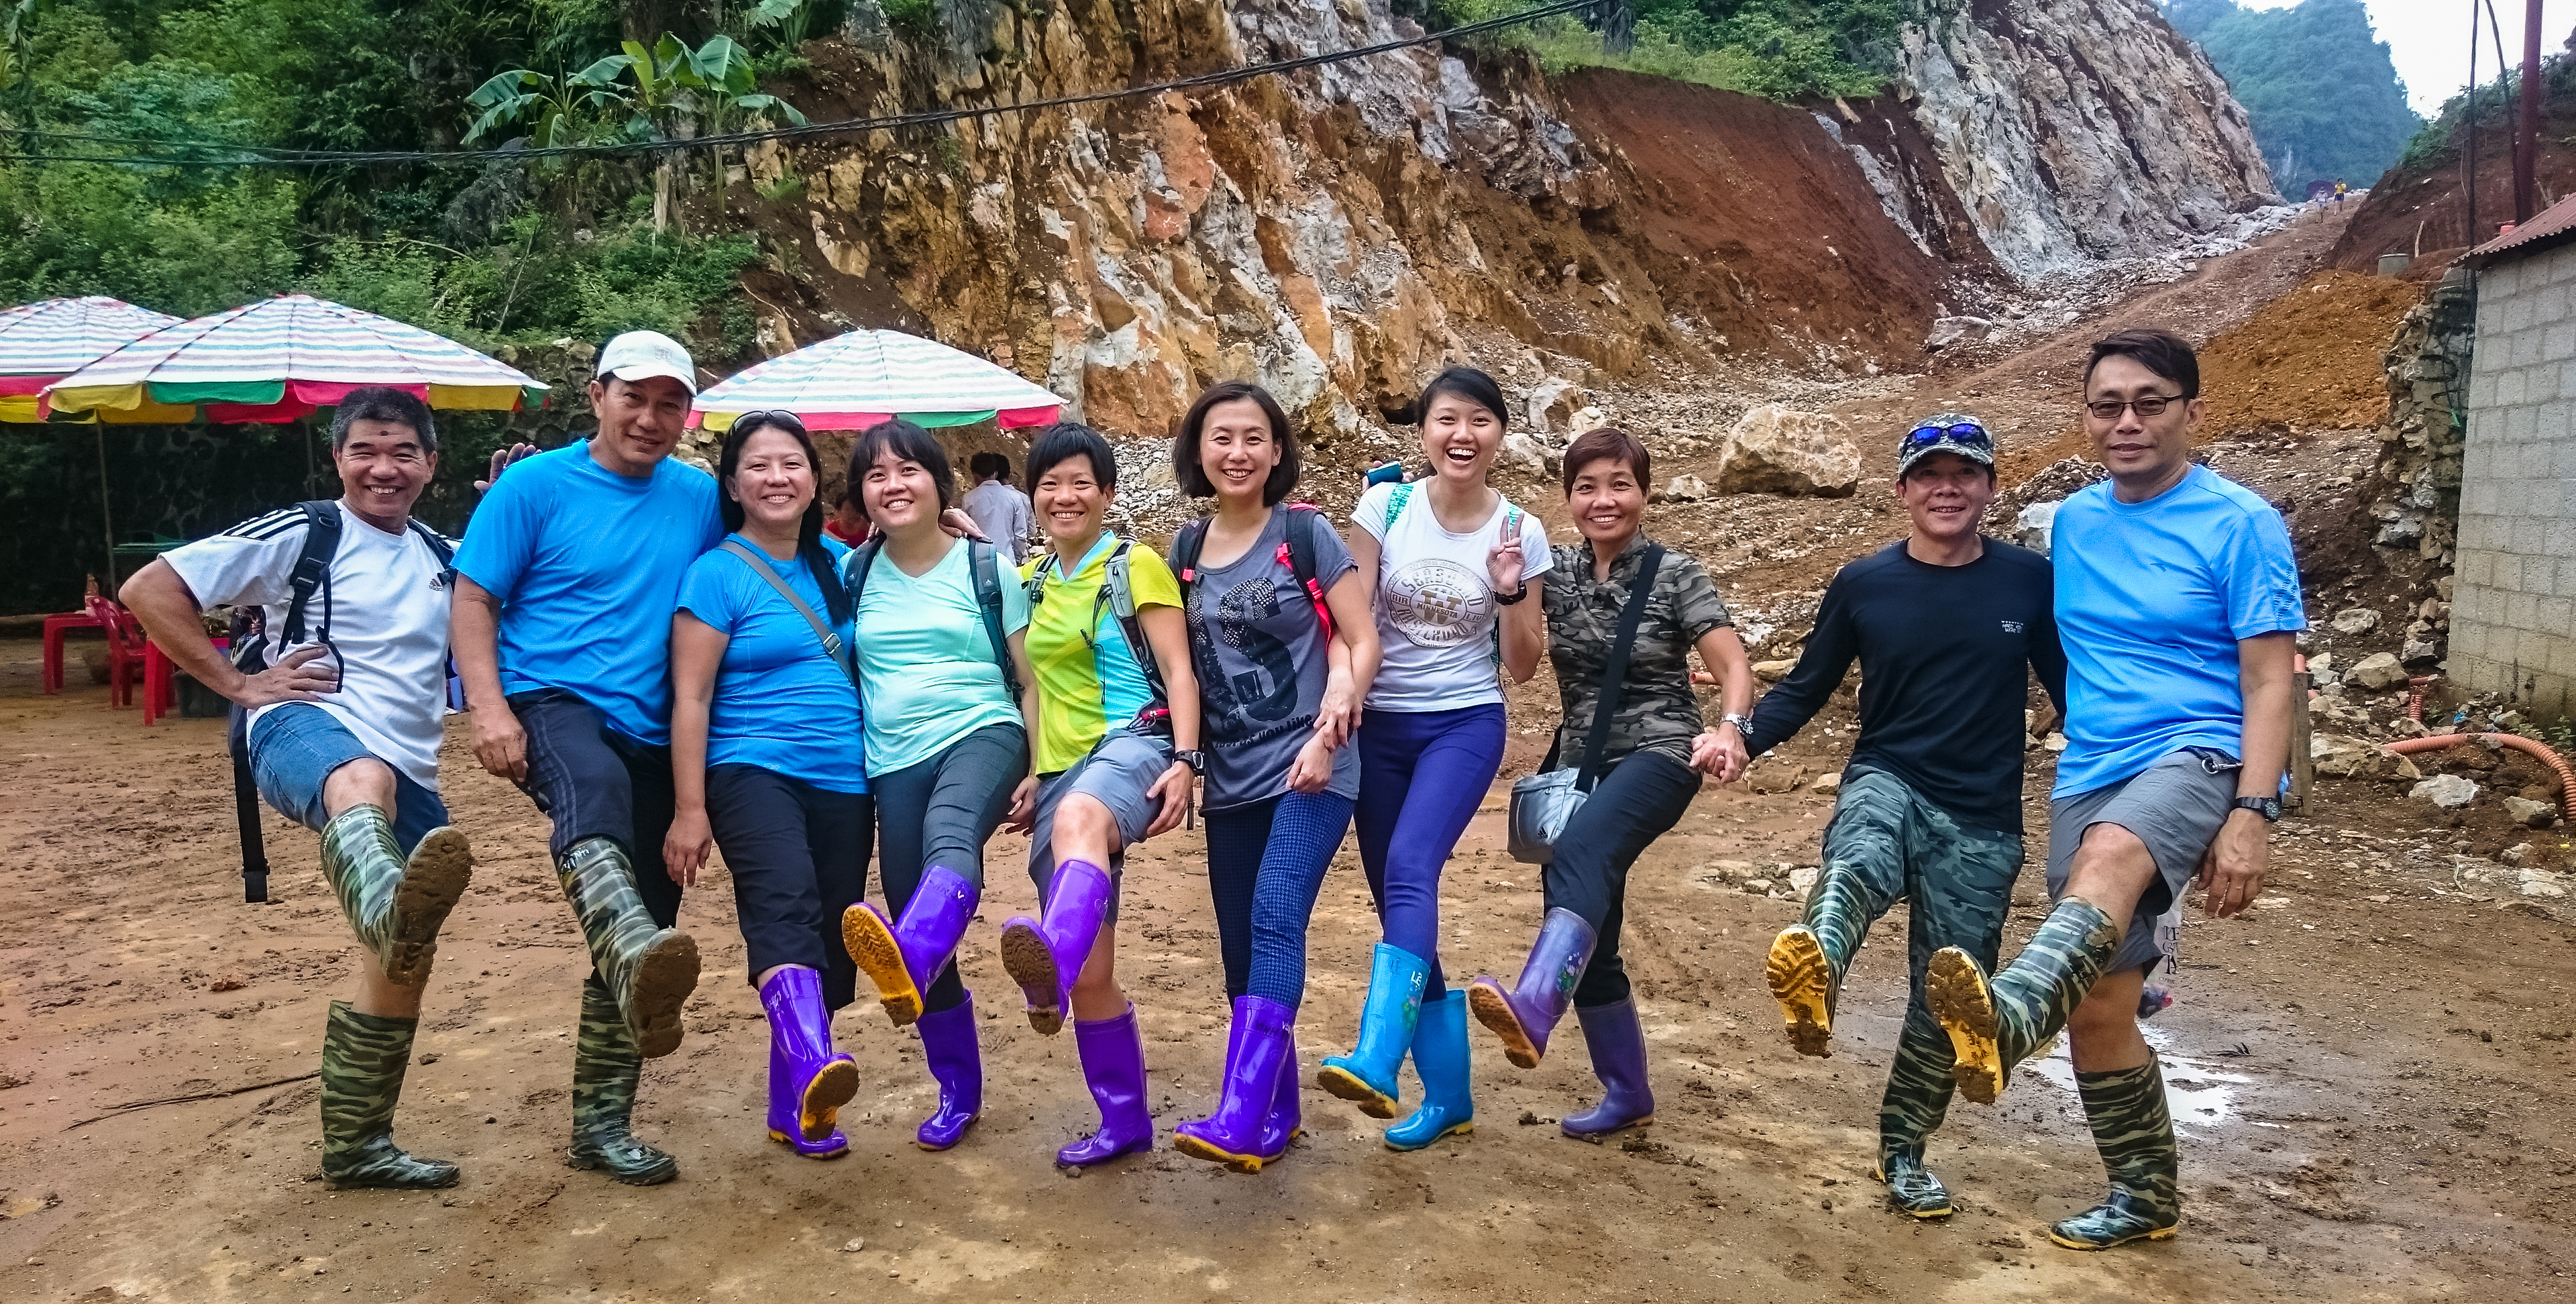 check out our plastic boots!